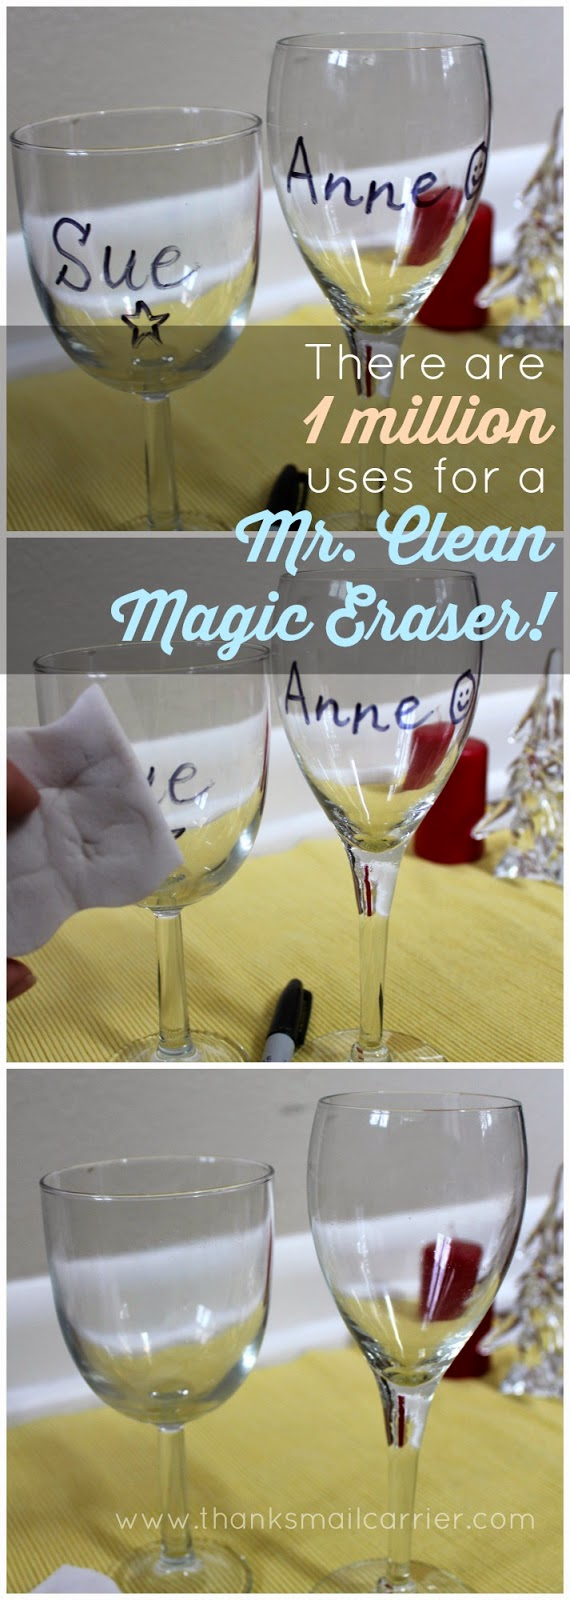 Mr. Clean Magic Eraser uses